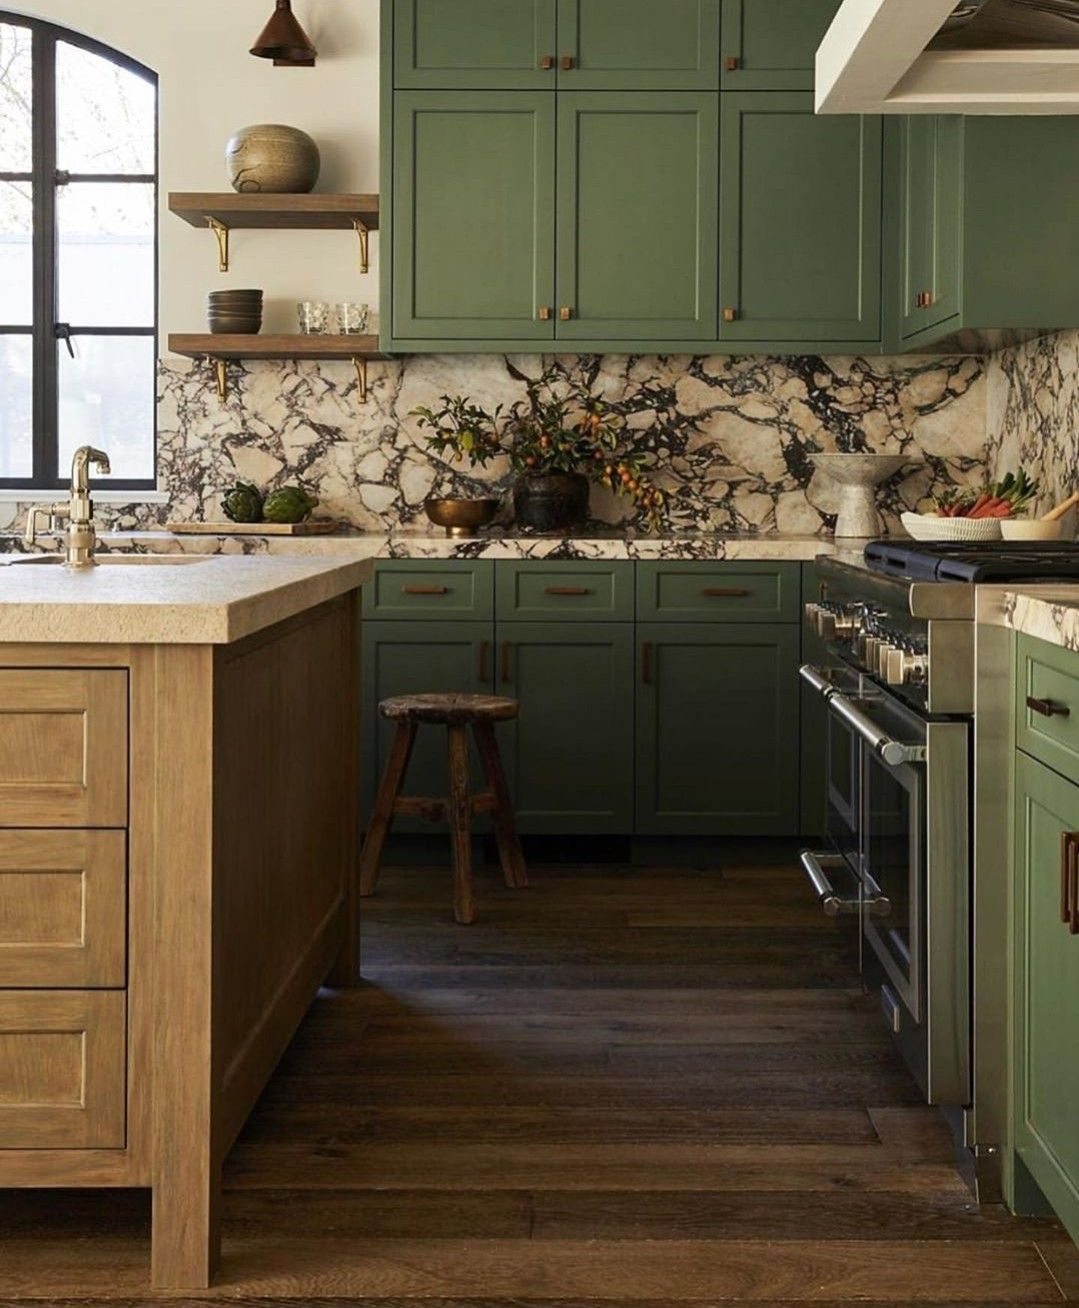 Pin By Nicole Armstrong On Richilden In 2020 Kitchen Inspiration Design Green Kitchen Cabinets Disc Interiors